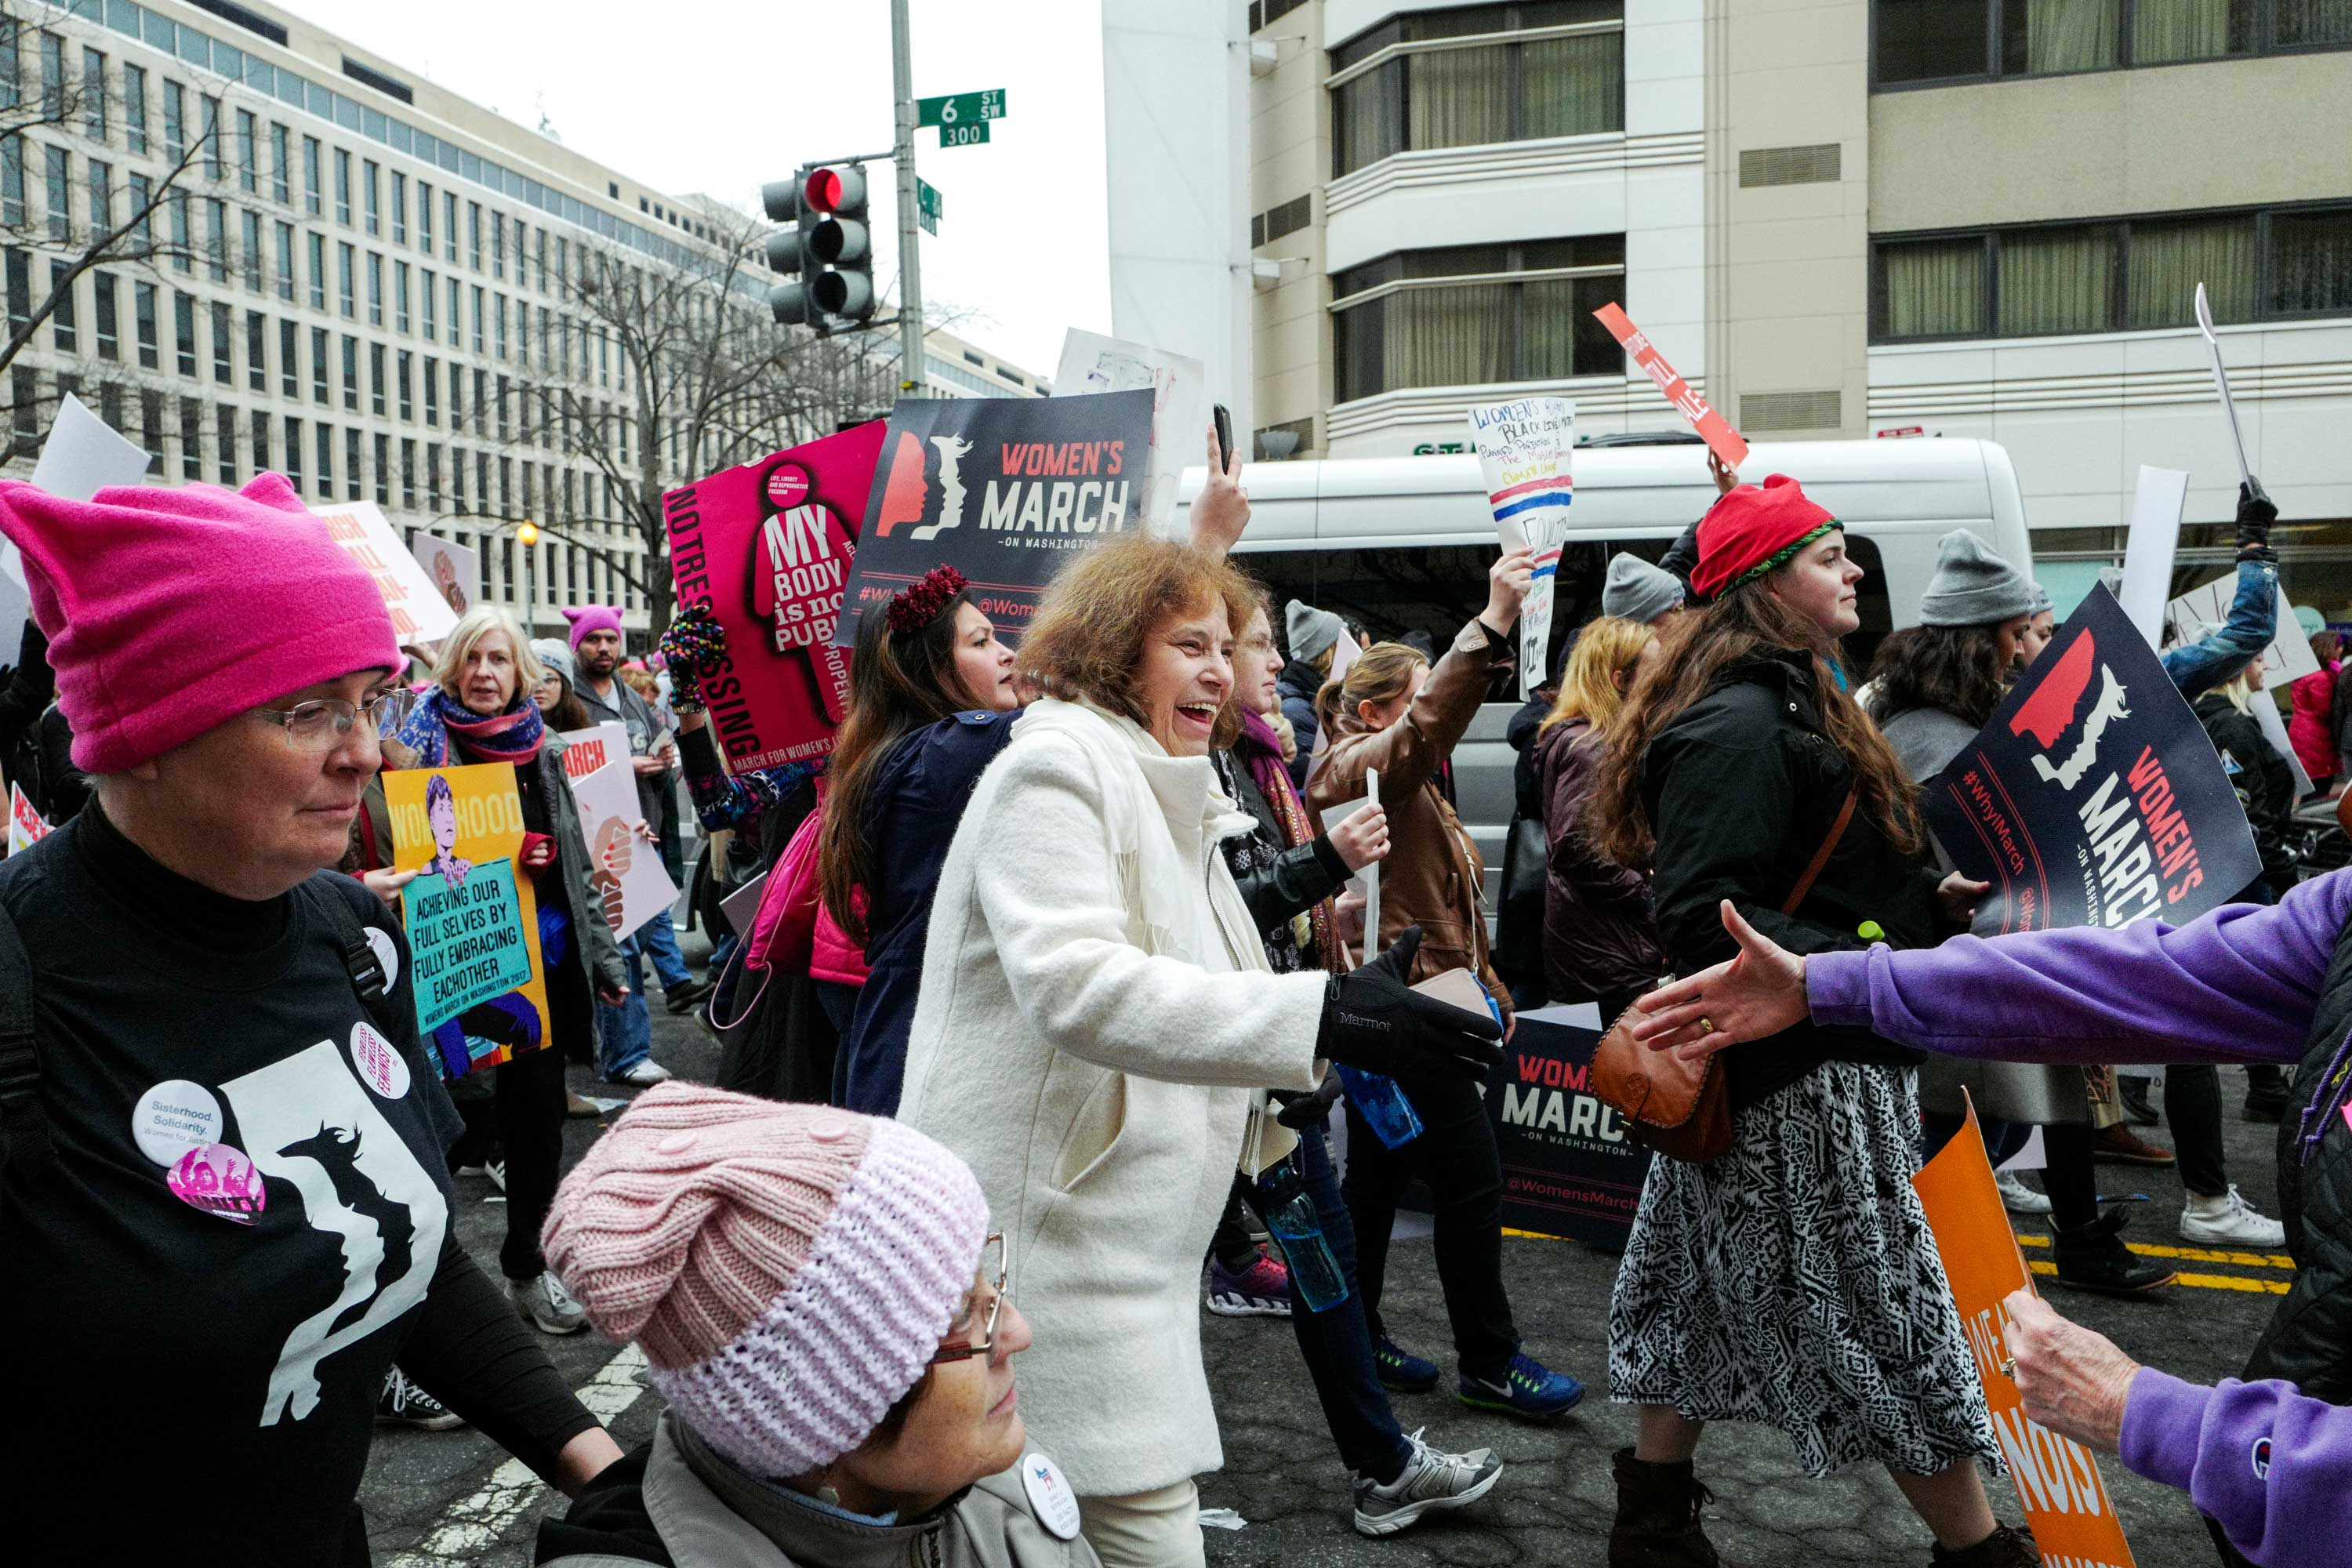 Jan Rose Kasmir, 67, was the subject of a famous photograph by Mark Riboud taken at an anti-Vietnam War rally in 1967.  She has remained active in progressive politics and marched at the Women's March the day after Donald Trump's inauguration. Jan. 21, 2017.